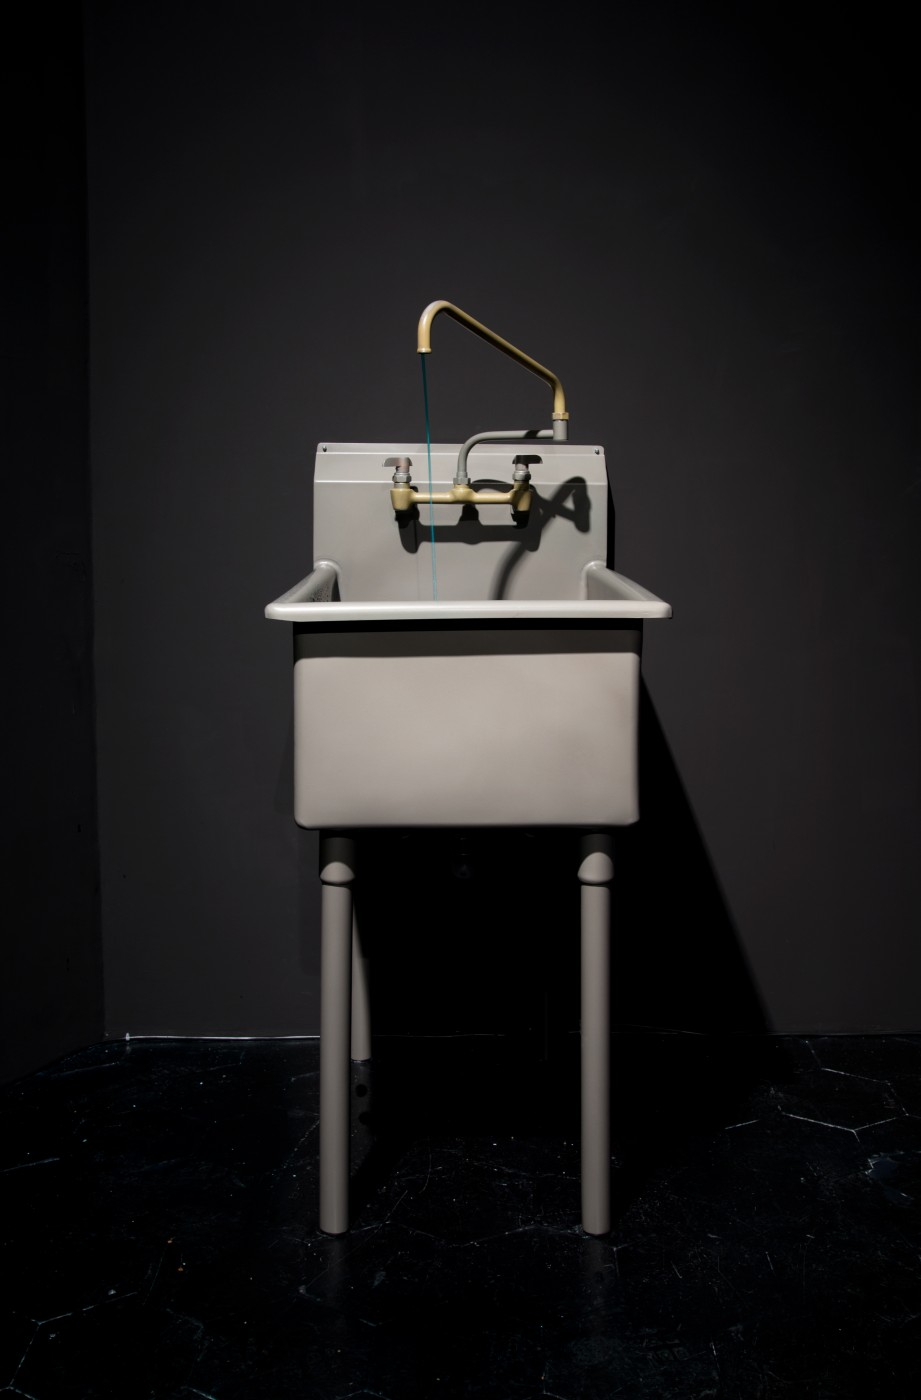 NATURE THEATER OF VIOLENT SUCCESSION  Sink From Foreclosed Morgue</I>, 2015 Salvaged refurbished utility sink, live freshwater ecosystem, biological filter pump, clear tubing, blue water dye, Cyprinid sp. fish  134 x 52 x 76 cm / 52.7 x 20.4 x 30 in  MAX HOOPER SCHNEIDER